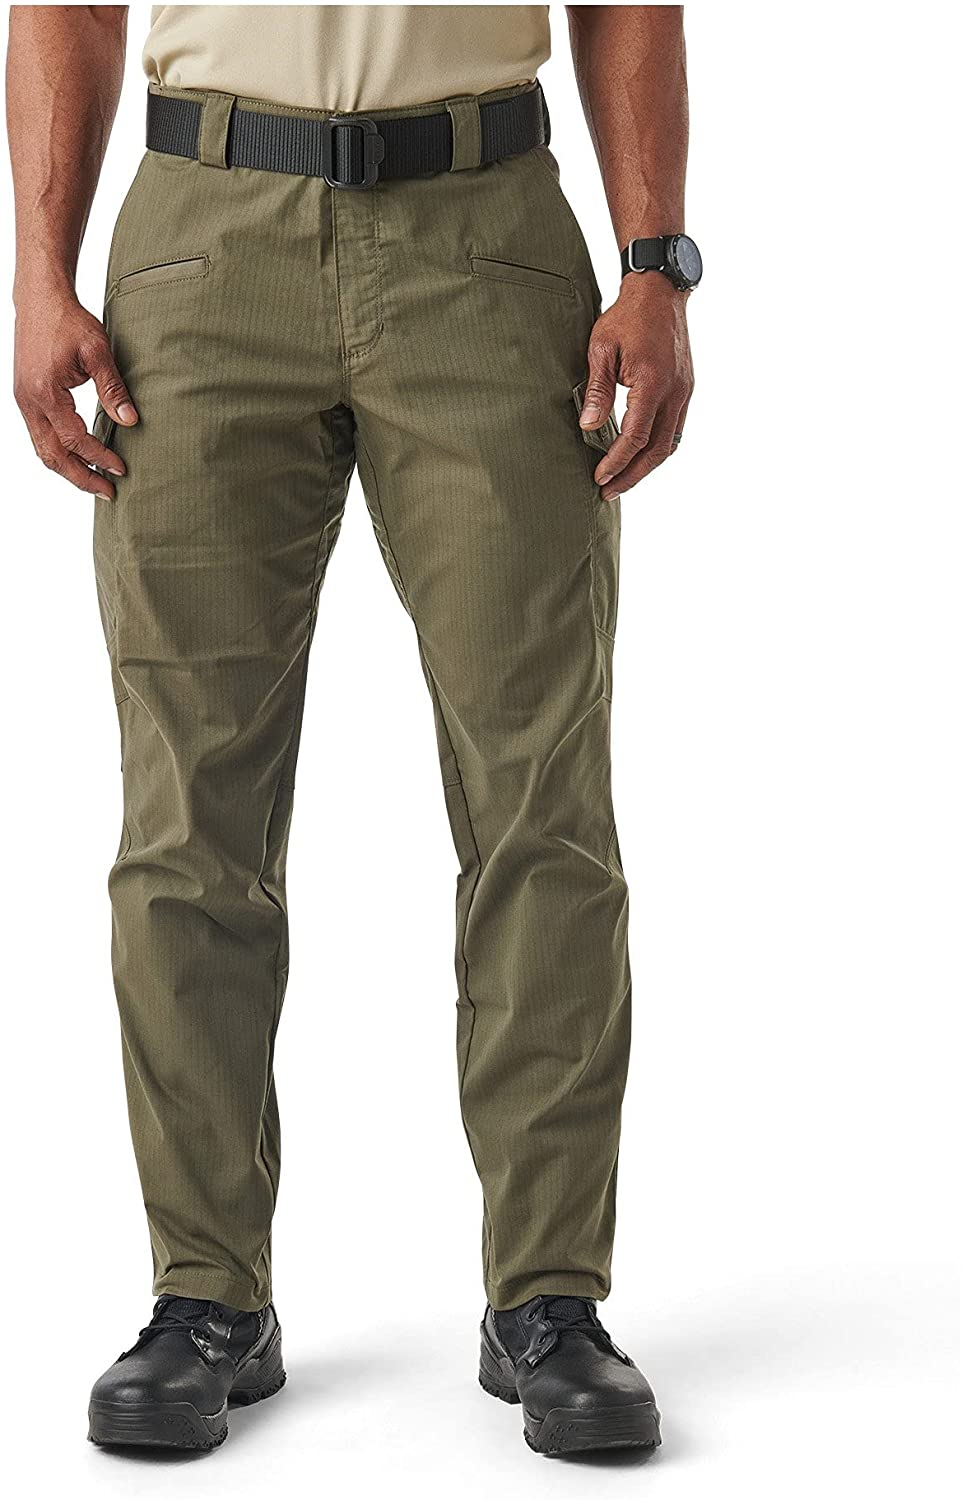 5.11 Tactical Men's Icon Cargo Pant, Flax-Tac Stretch, Guessted, Teflon Finish, Style 74521